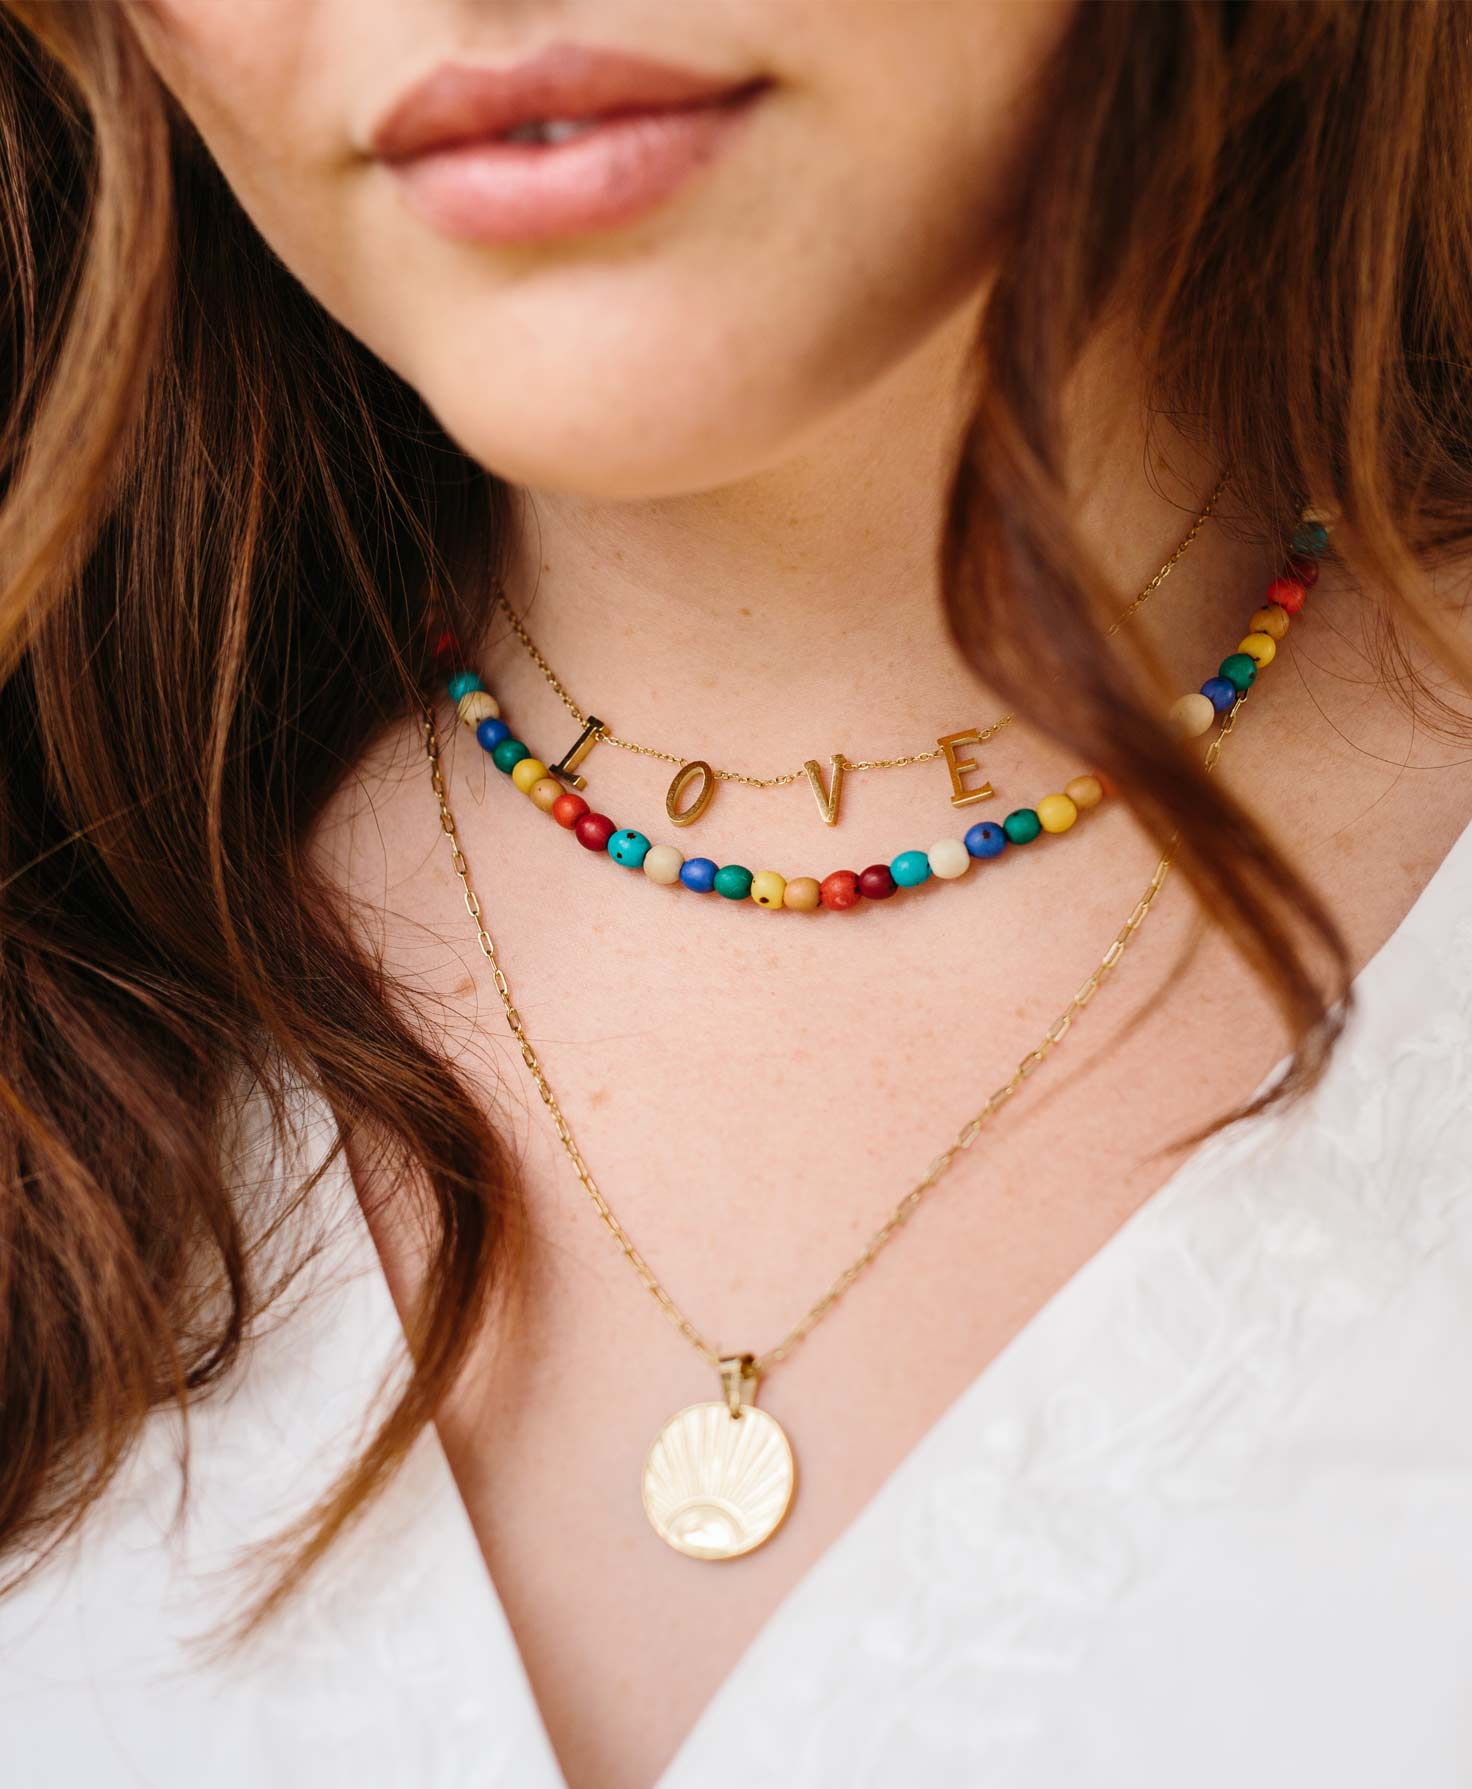 A model wears the Sunrise Necklace layered with two other necklaces. The Sunrise Necklace hangs down onto her chest, while the shorter Achira Multicolor Necklace and Beloved Necklace lay closer to her neck.